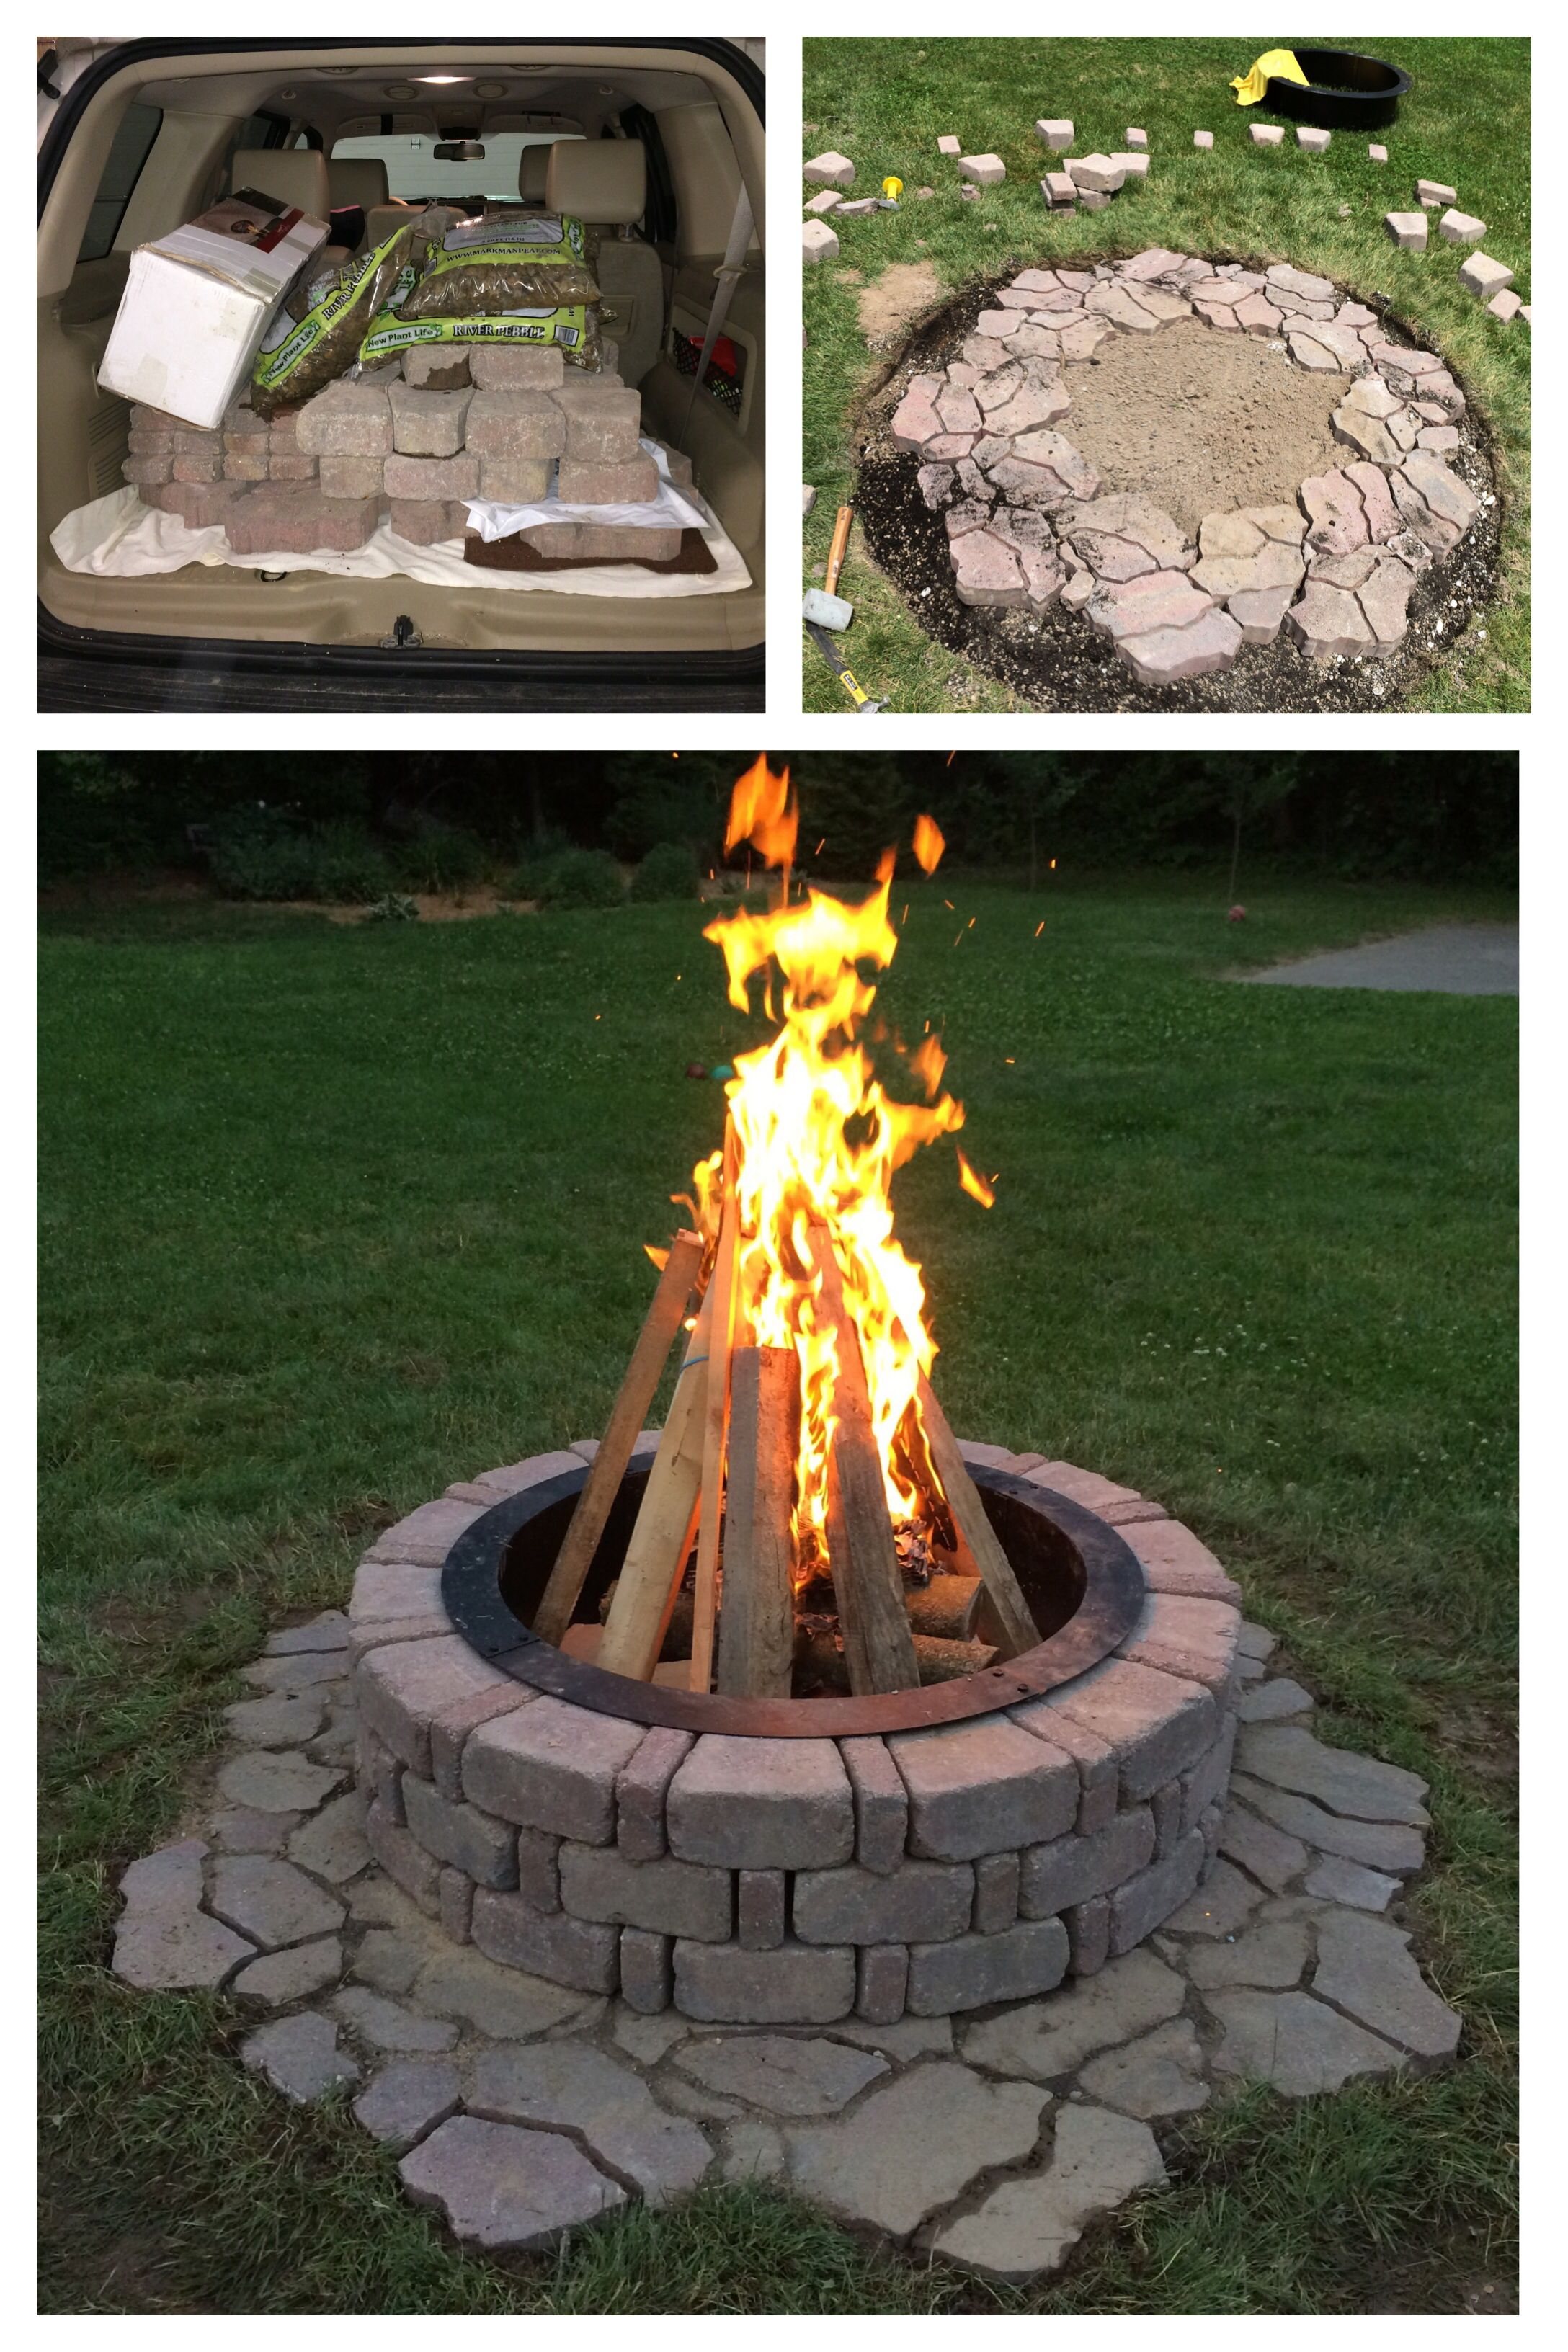 Fire Pit With A Flagstone Base Ring Insert And Other Materials Purchased From Menards Outdoor Fire Pit Outdoor